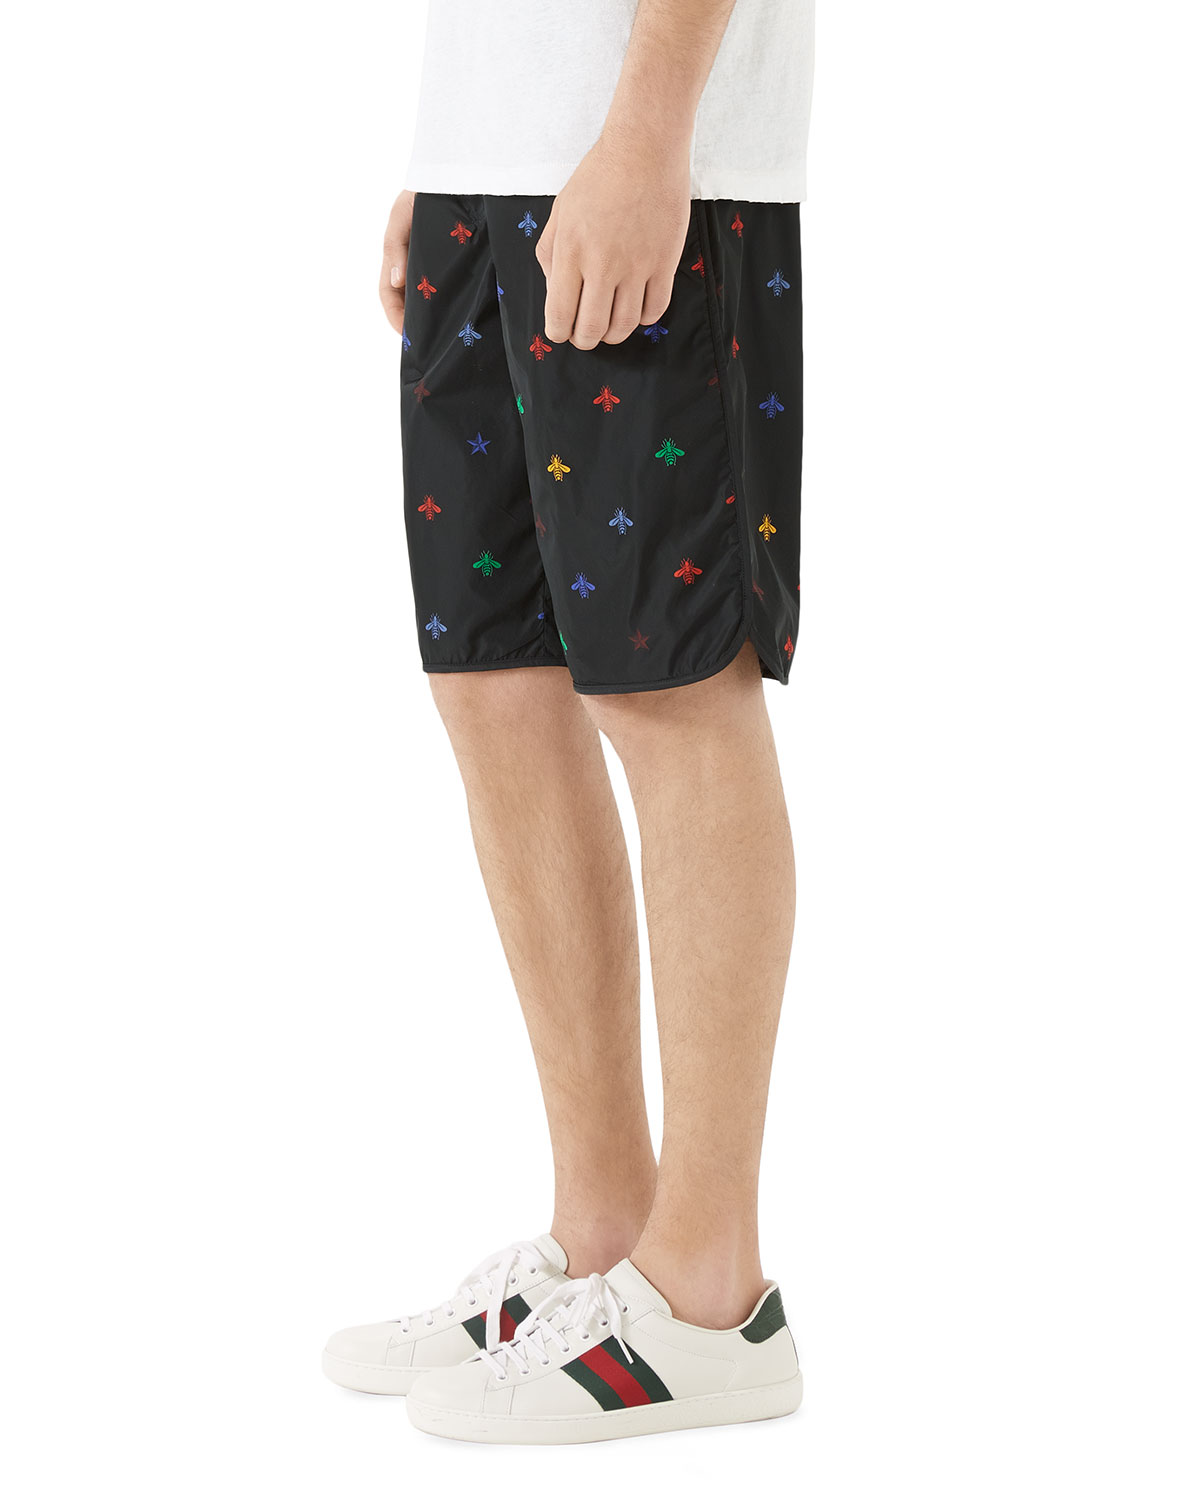 524d159996 Gucci Men's Signature Bee-Embroidered Long Swim Trunks | Neiman Marcus